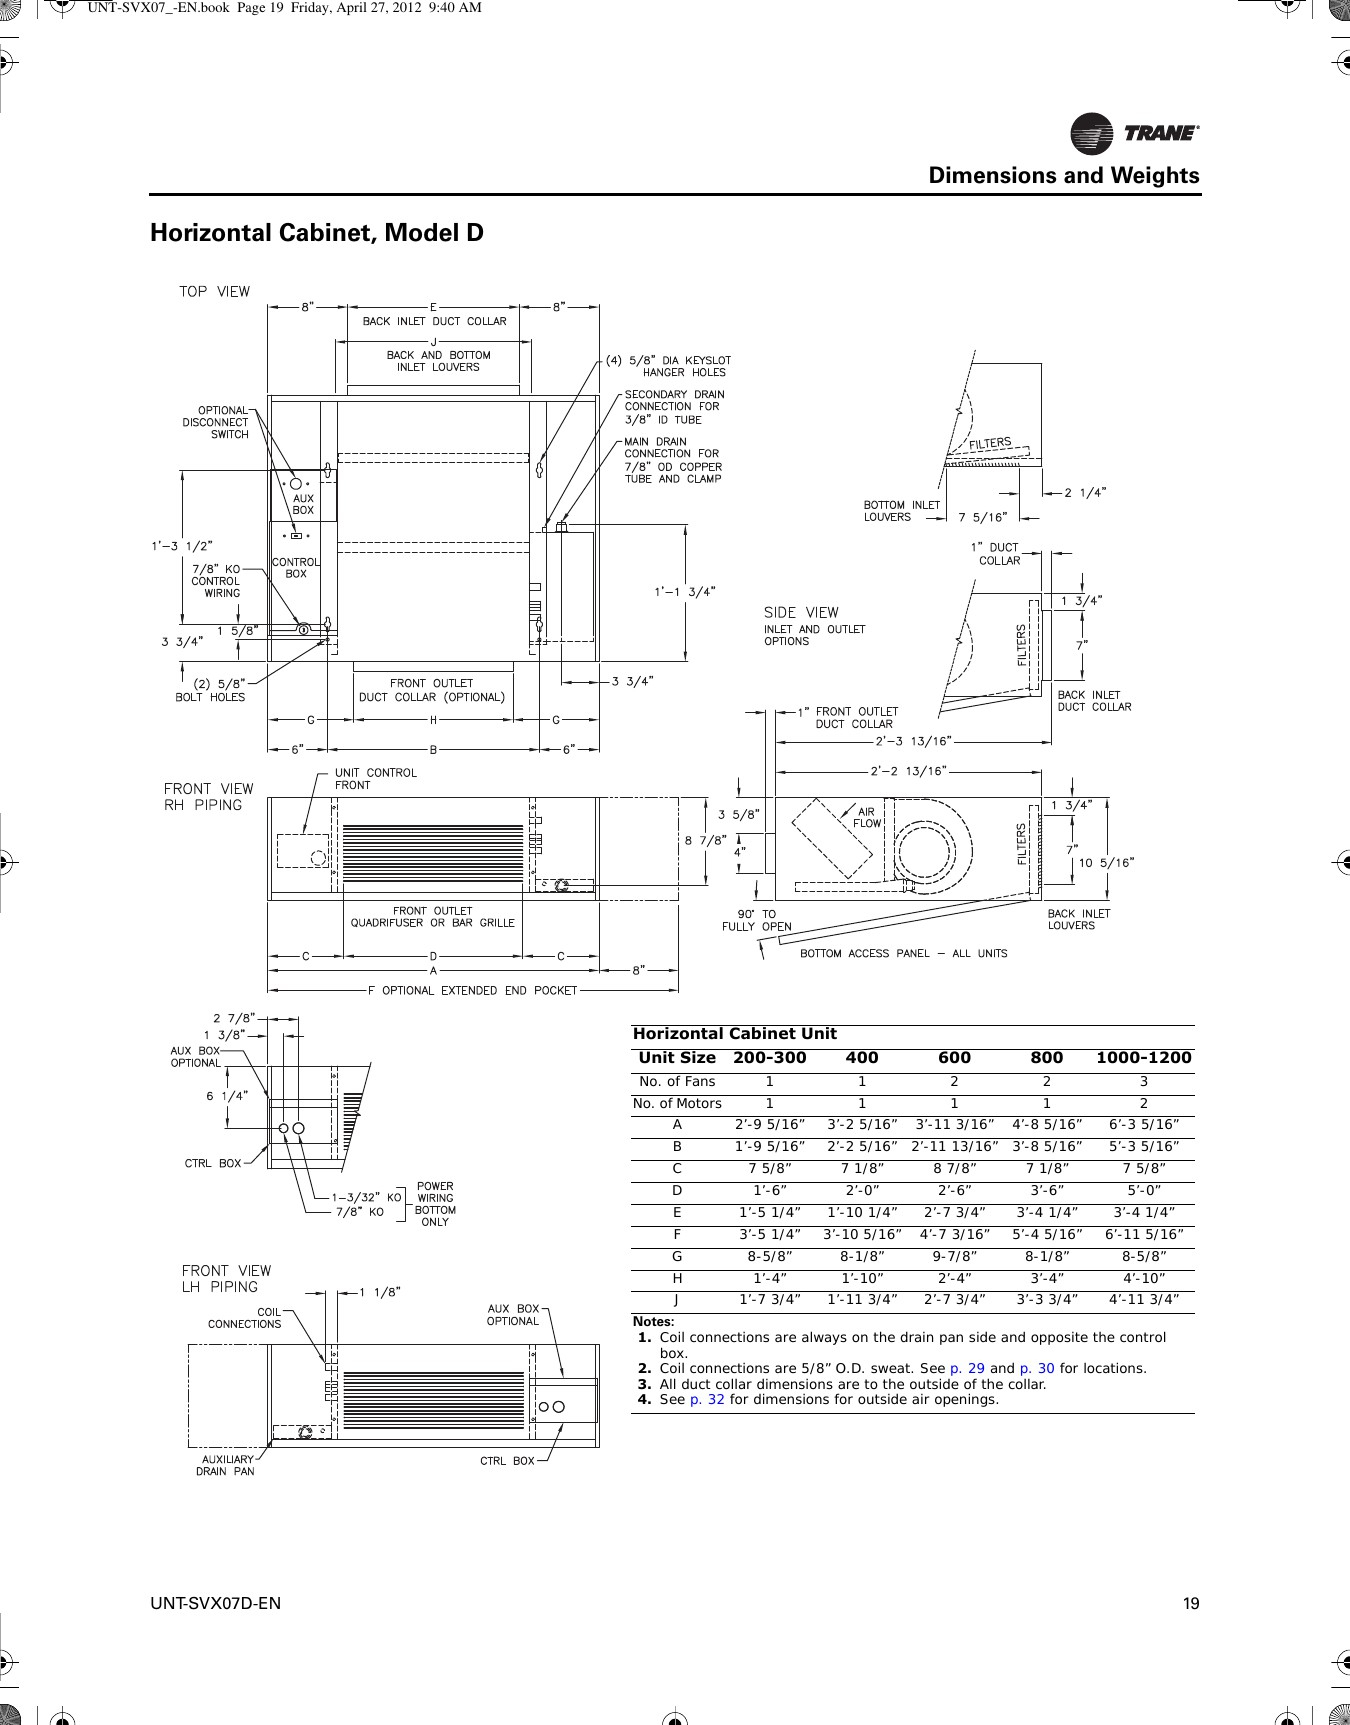 trane wsc060 wiring diagram Download-trane wsc060 wiring diagram Download Trane Wiring Diagrams Fresh Trane Heat Pump Troubleshooting Choice Image DOWNLOAD Wiring Diagram 1-f